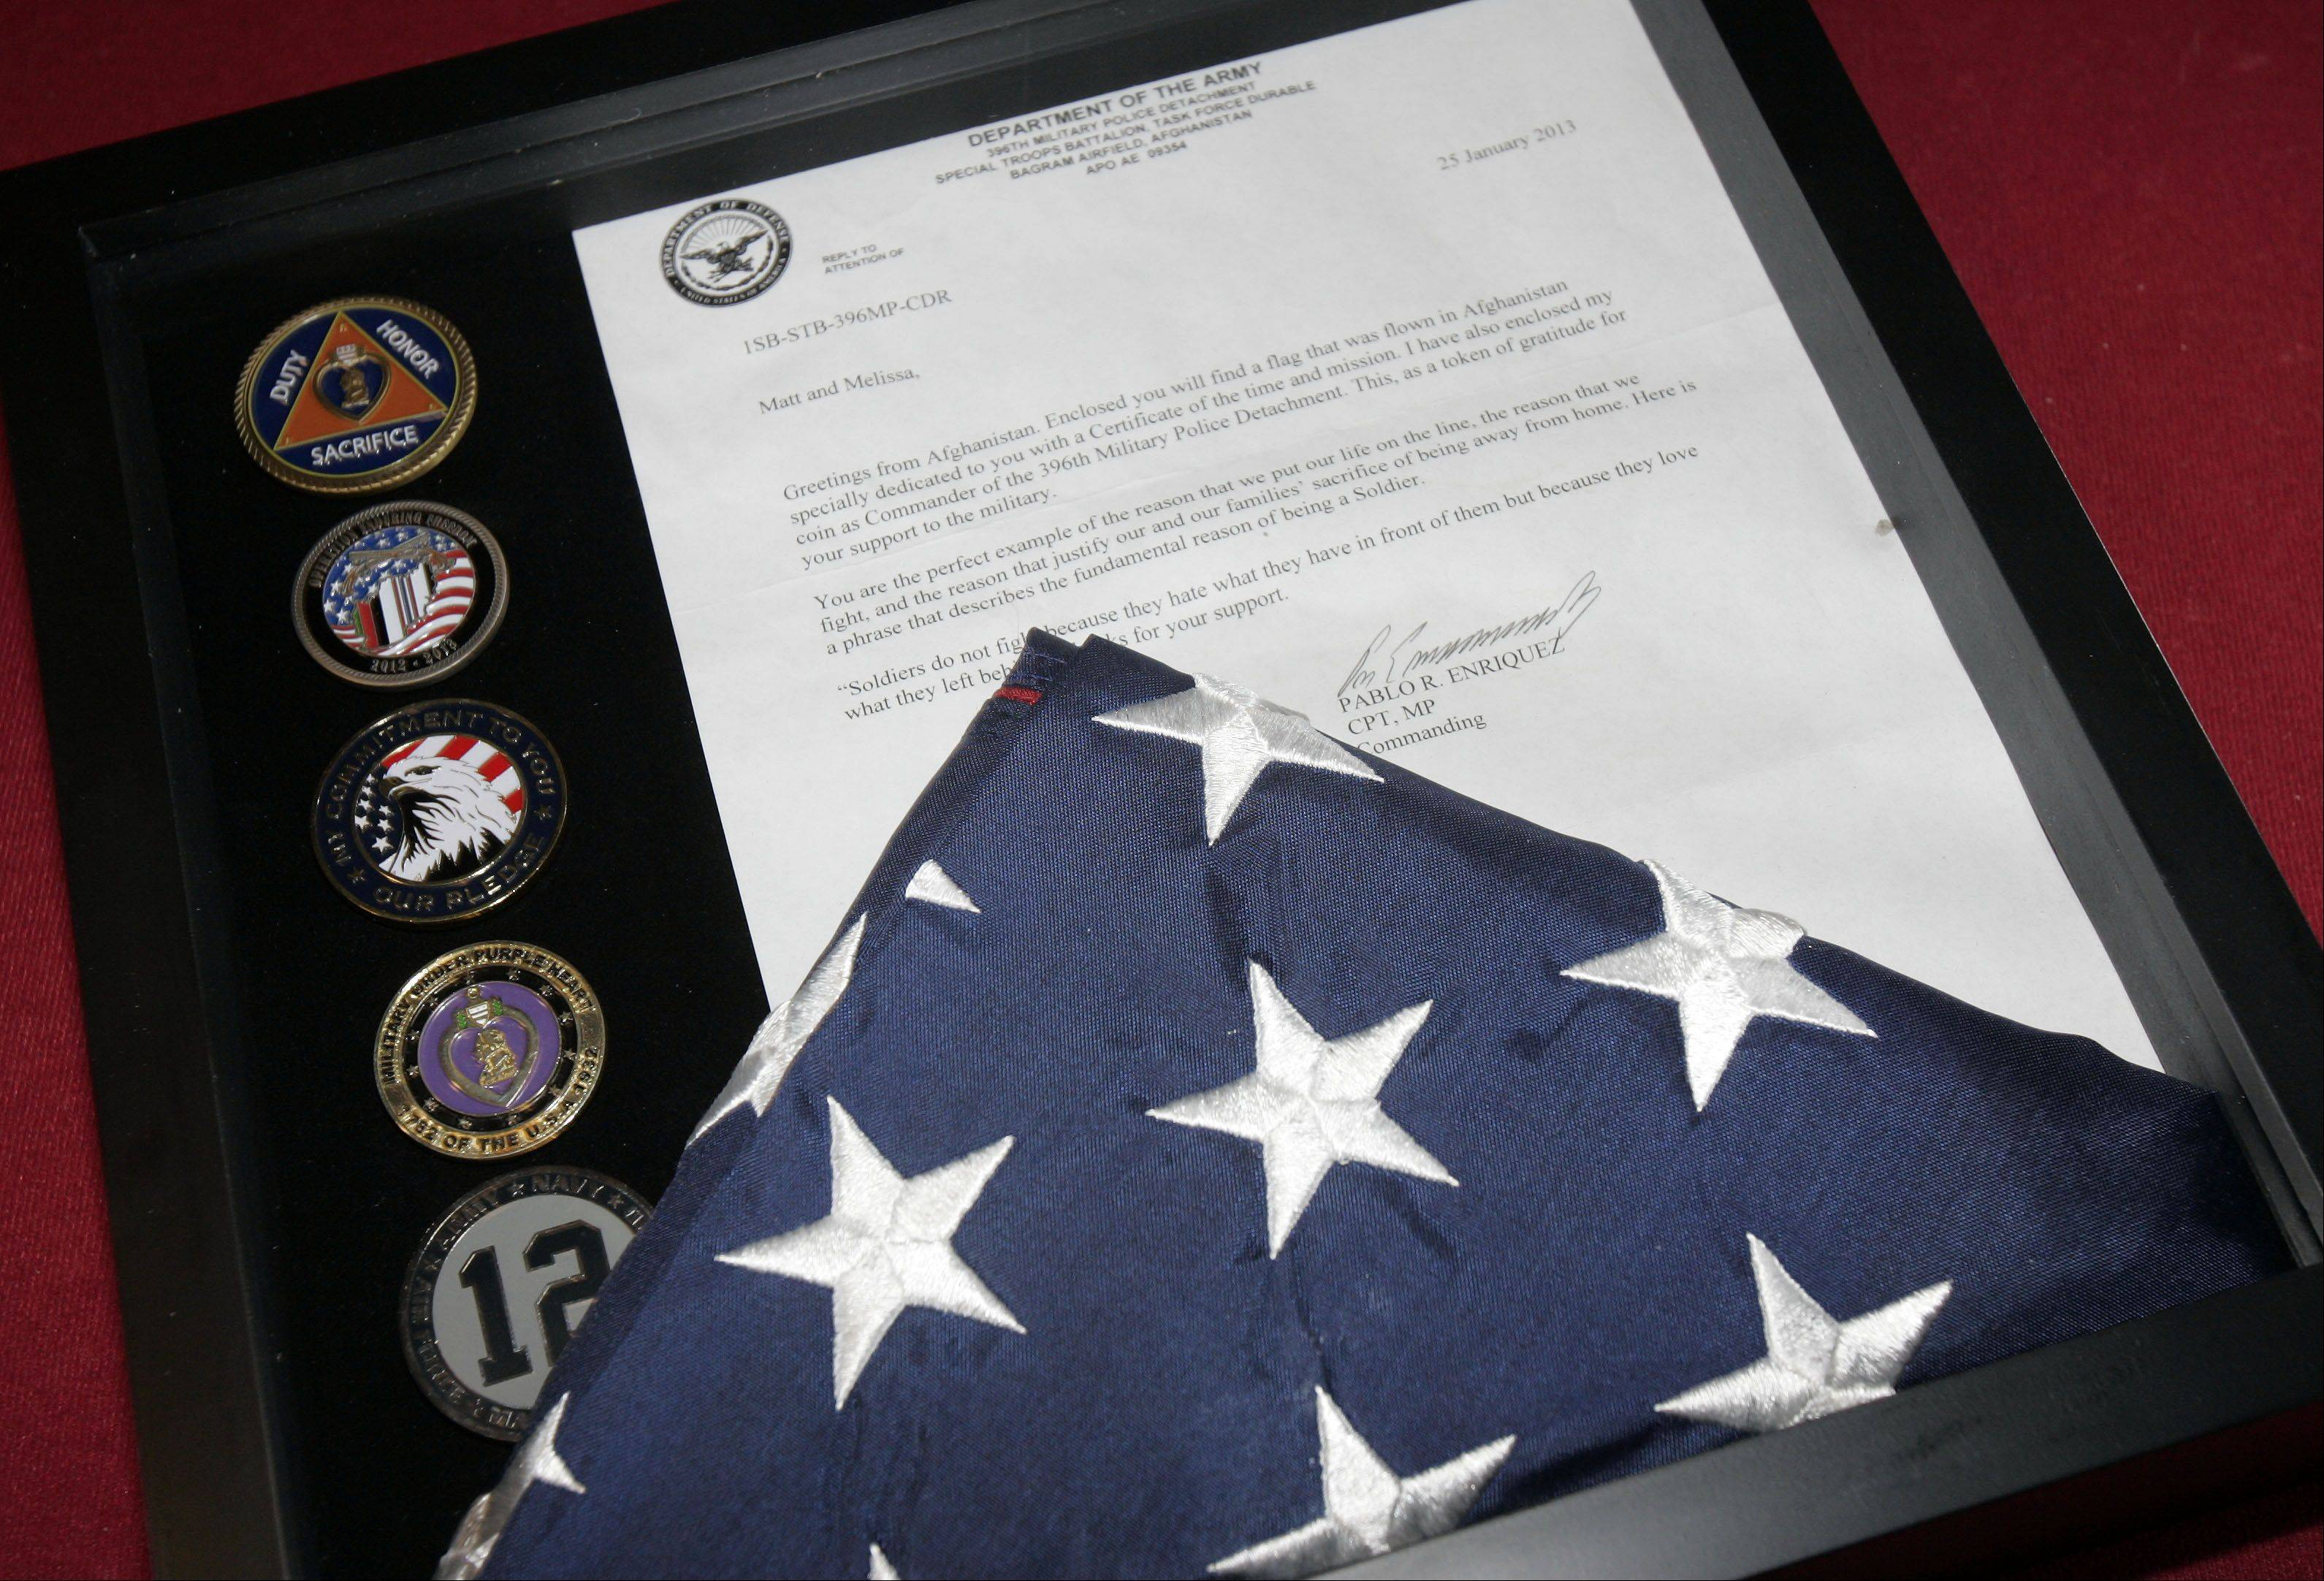 Matt Steichen of St. Charles received a flag from one of the wounded veterans he and his dad took with them to a game.